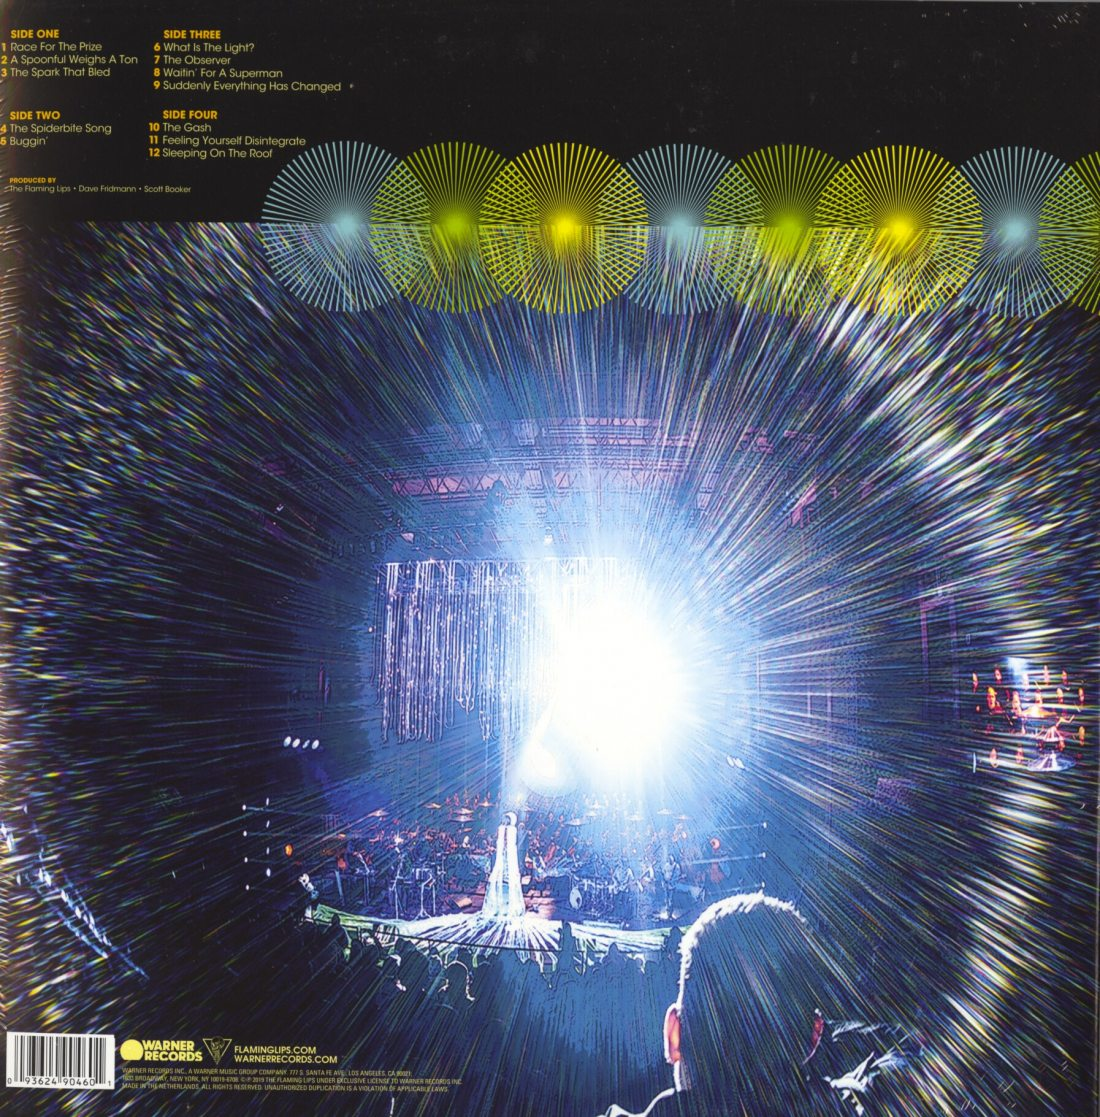 The Flaming Lips - Soft Bulletin: Live At Red Rocks - Double Vinyl, LP, WEA, 2019